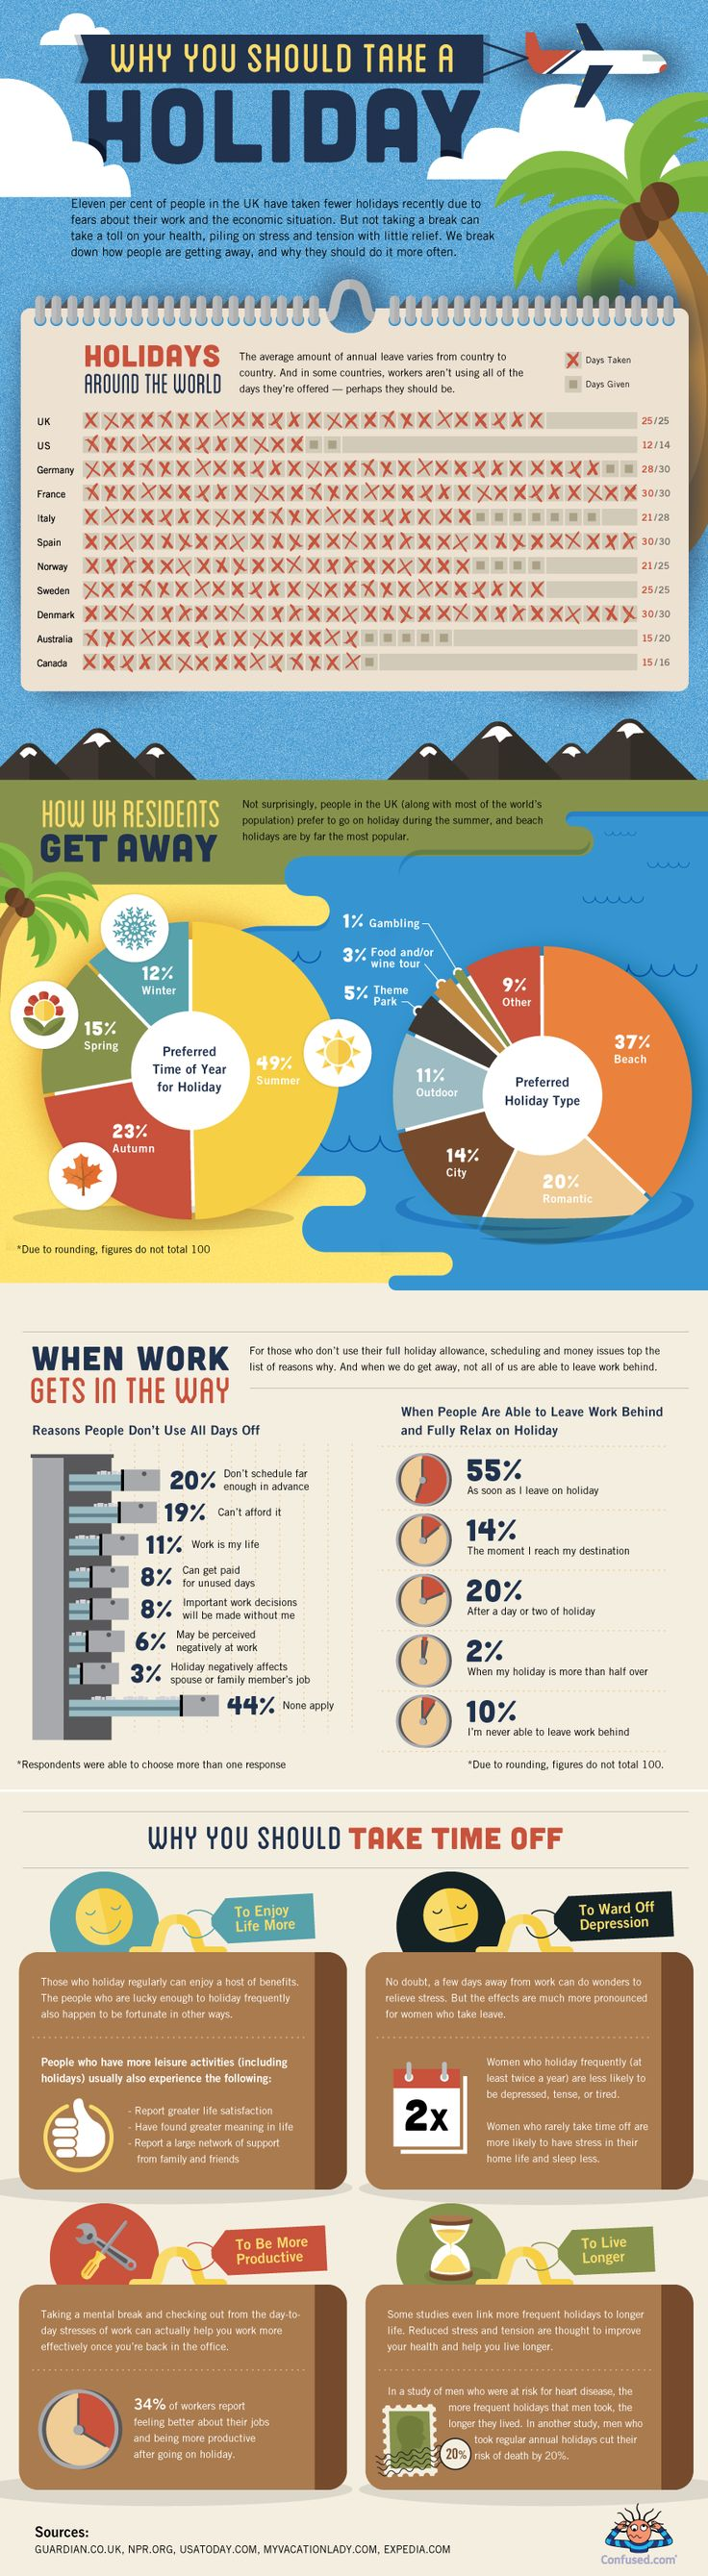 Take a holiday! According to this infographic from Confused.com, there are employees across Europe who don't take all of their allotted holidays. Take advantage of your holidays and enjoy a relaxing getaway.